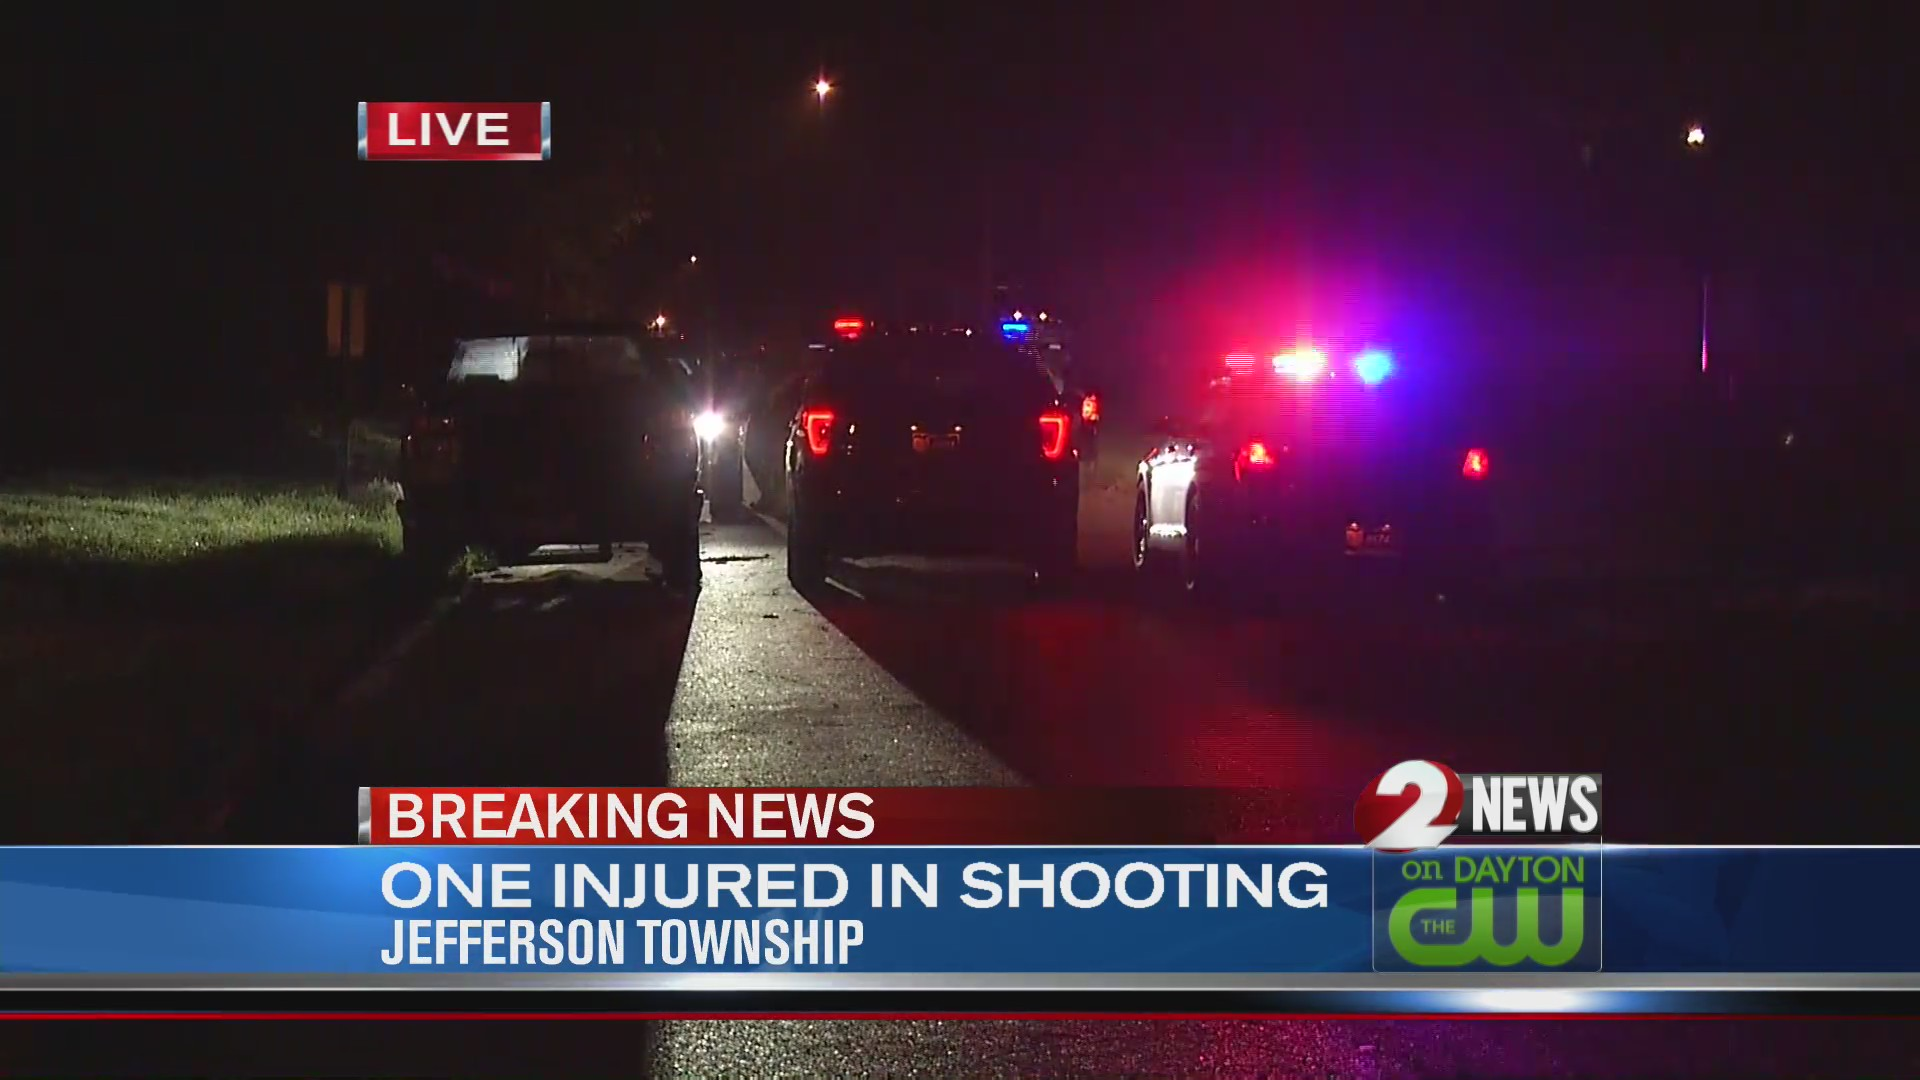 One injured in Jefferson Twp shooting